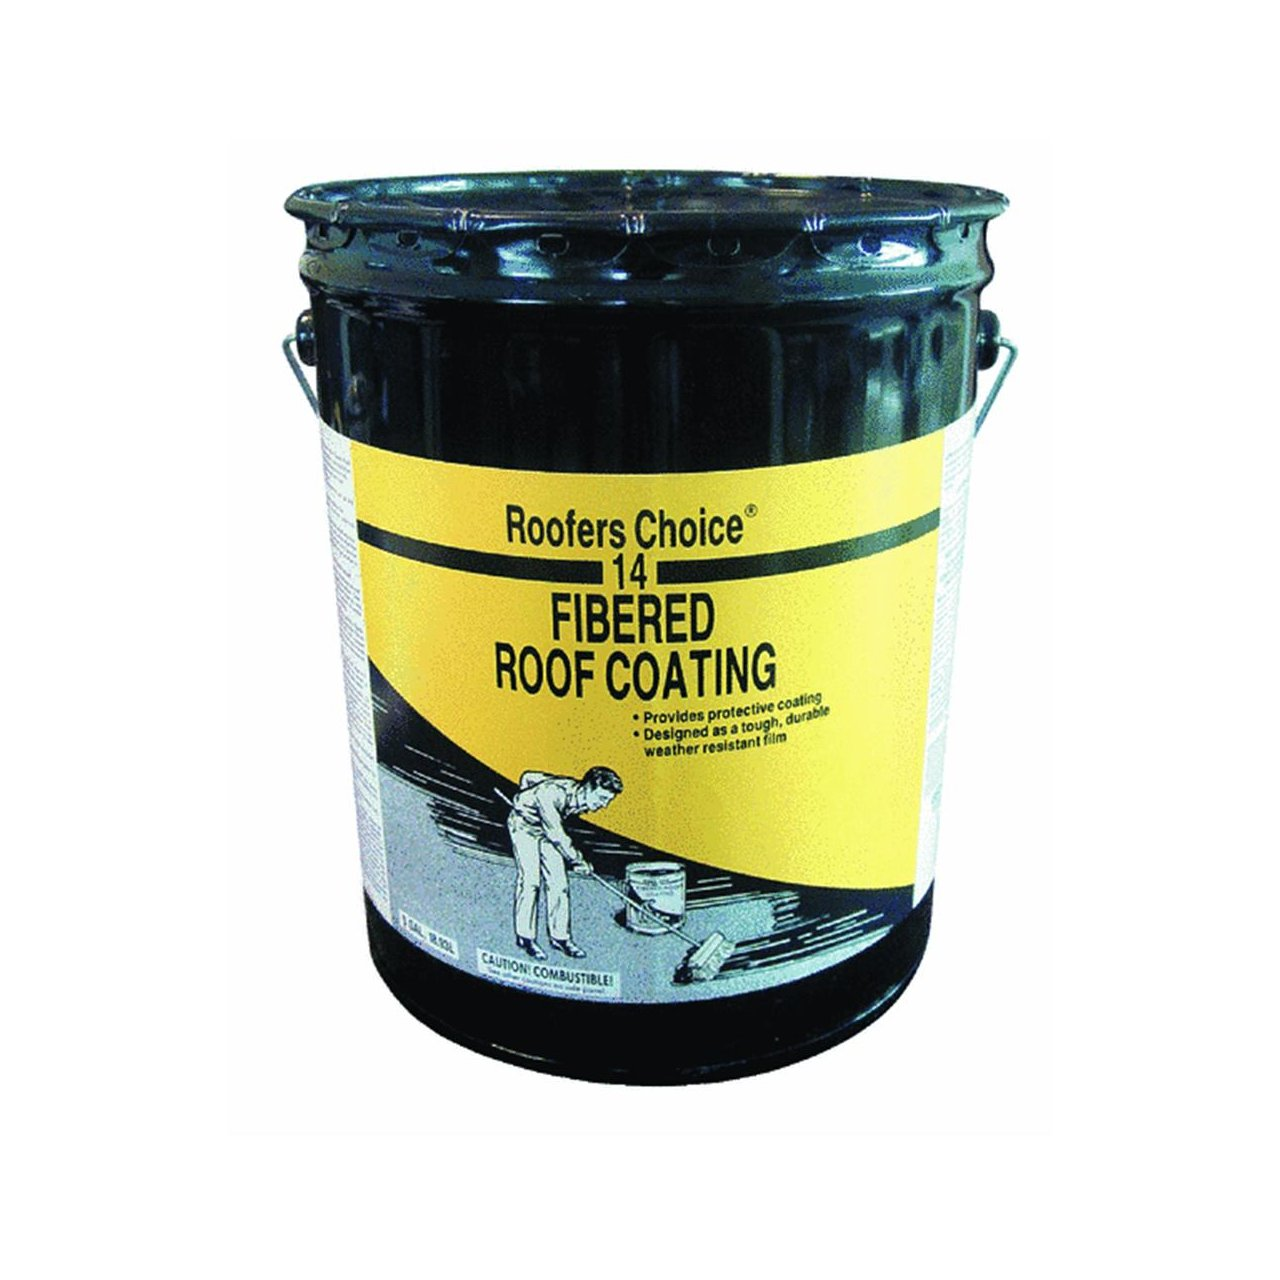 Roofers Choice RC014070 Fibered Roof Coating, 5 Gallon Container:  Industrial Coatings: Amazon.com: Industrial U0026 Scientific